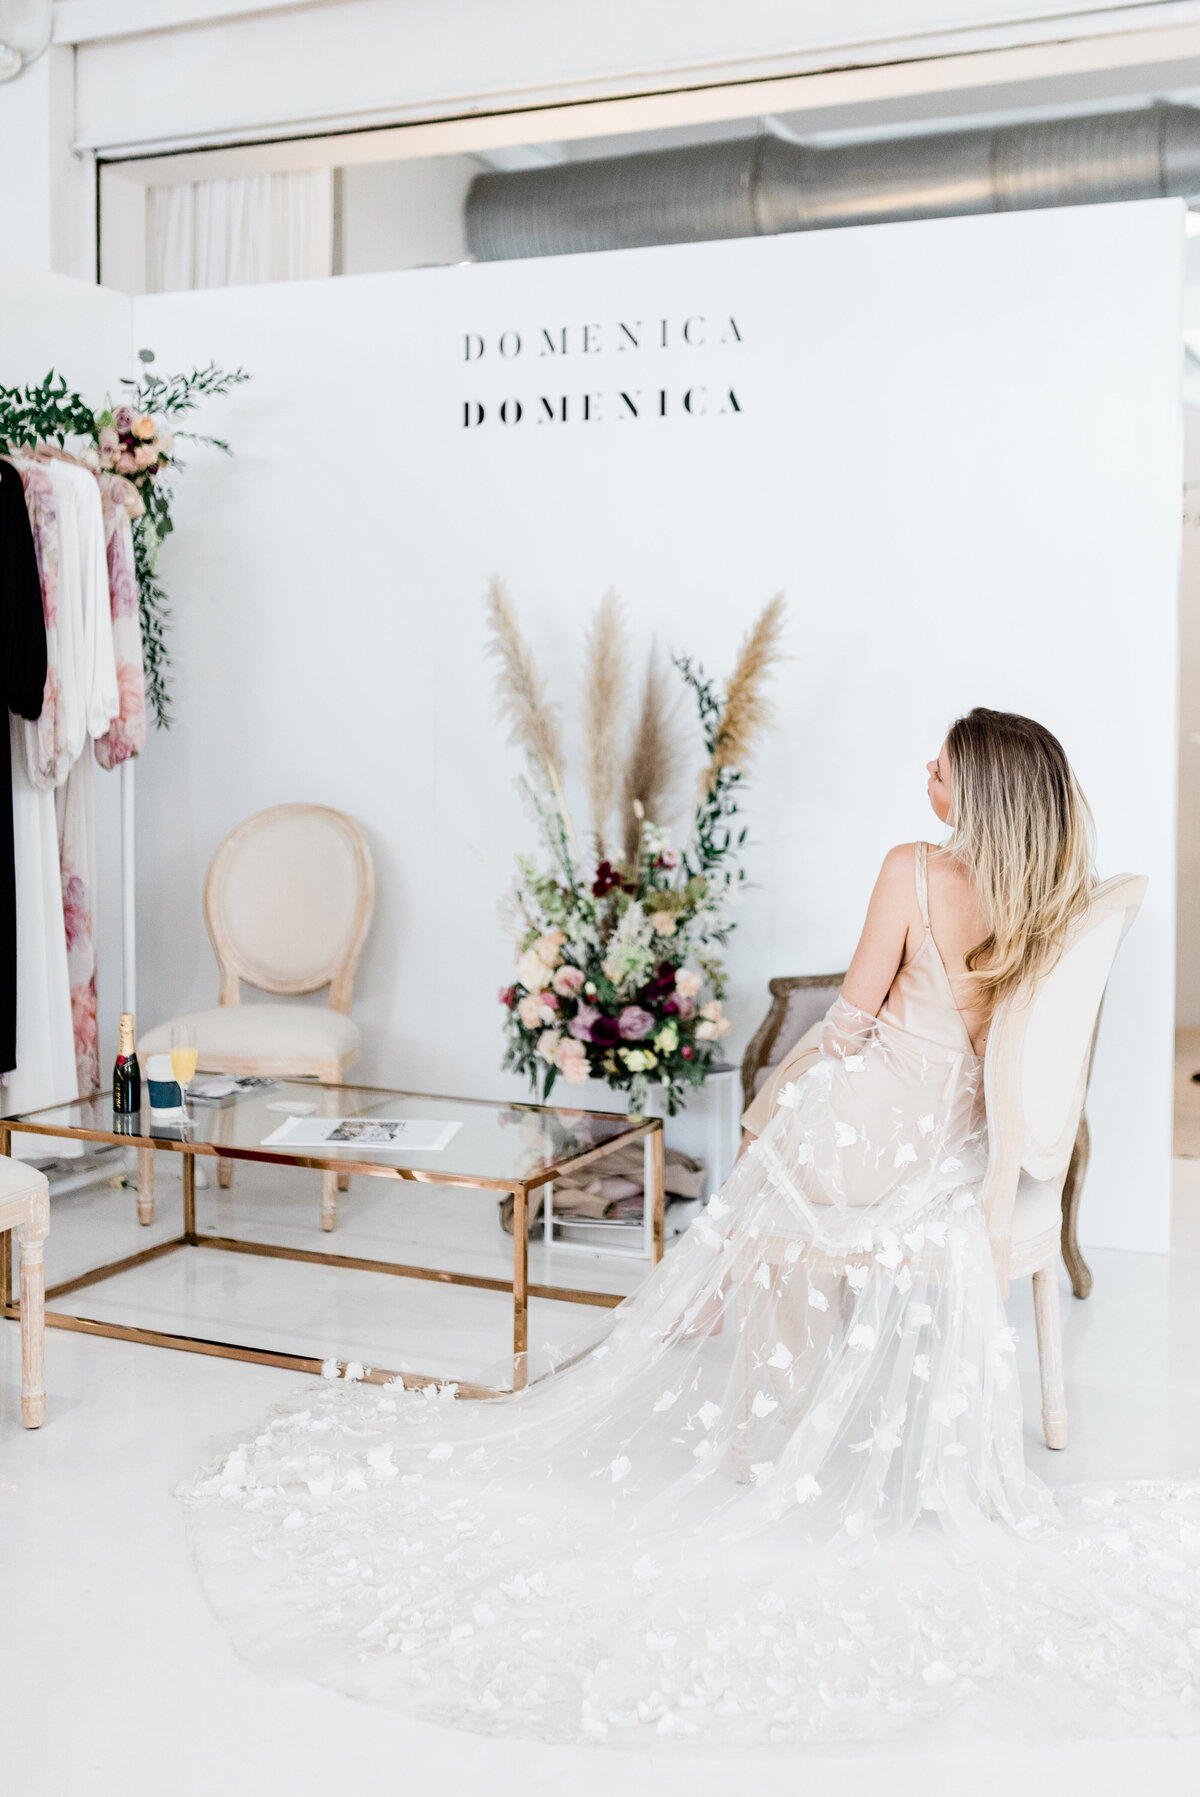 DOMENICADOMENICANYBFW2019-308